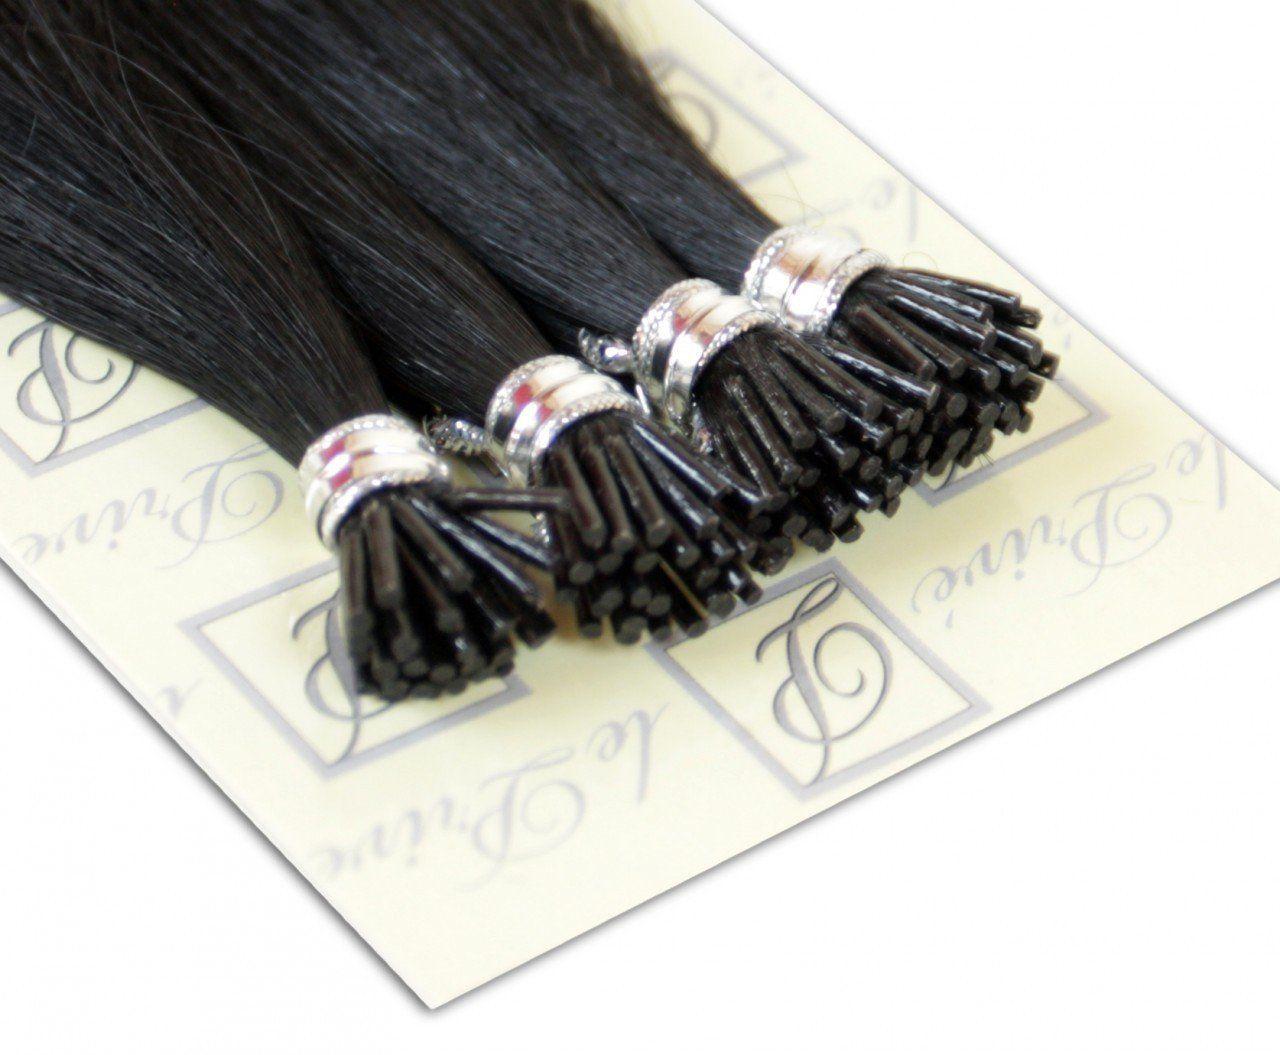 Le Prive Remy Hair Couture Hair Extensions 18 I Tip Body Wave 27